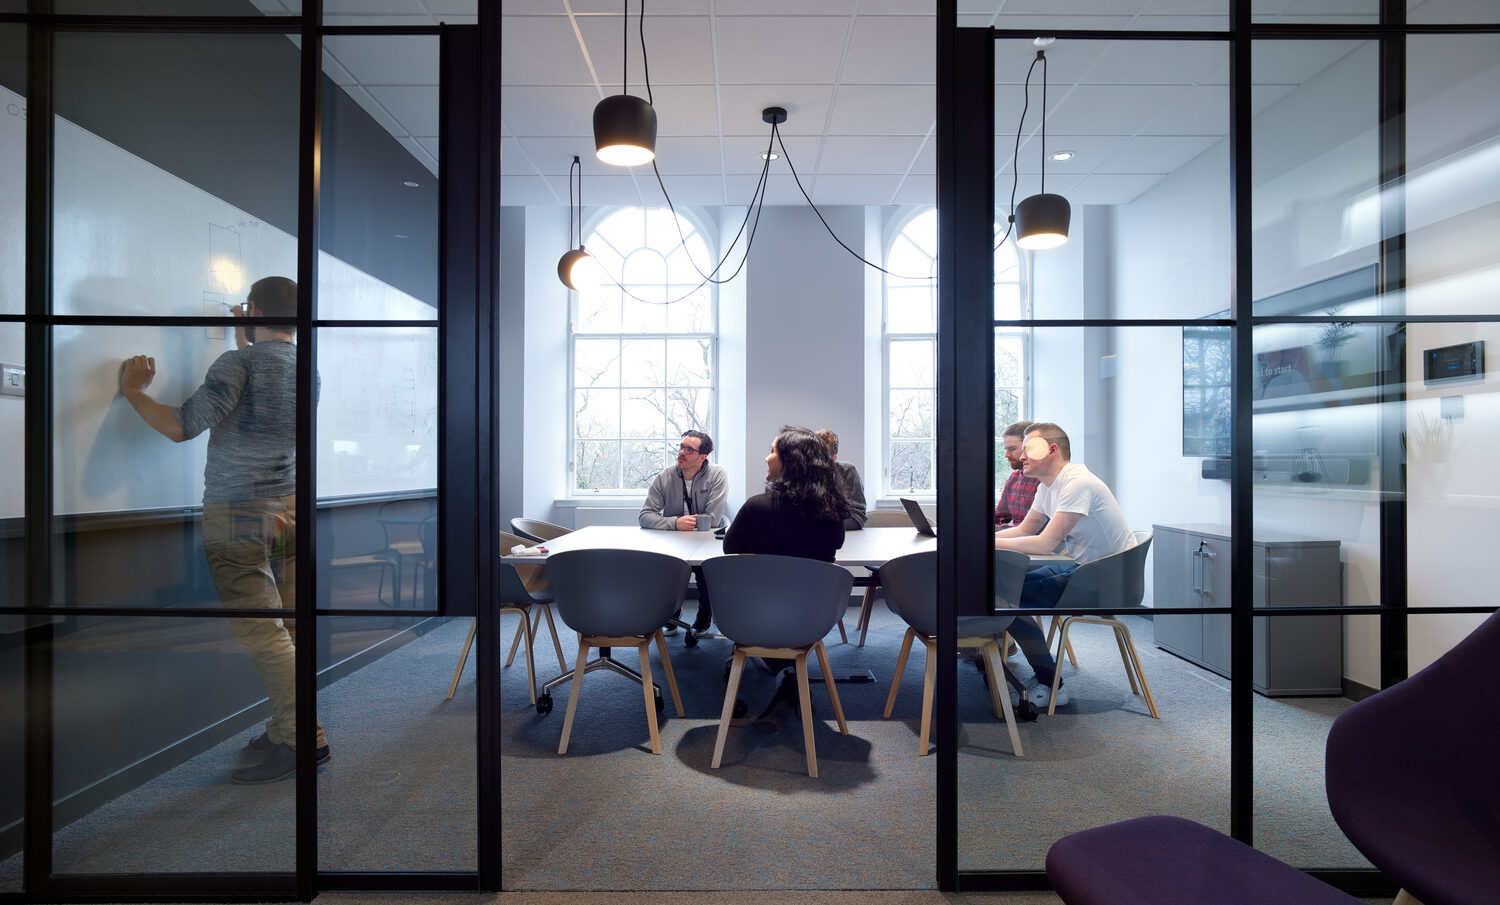 Hybrid working and maintaining company culture